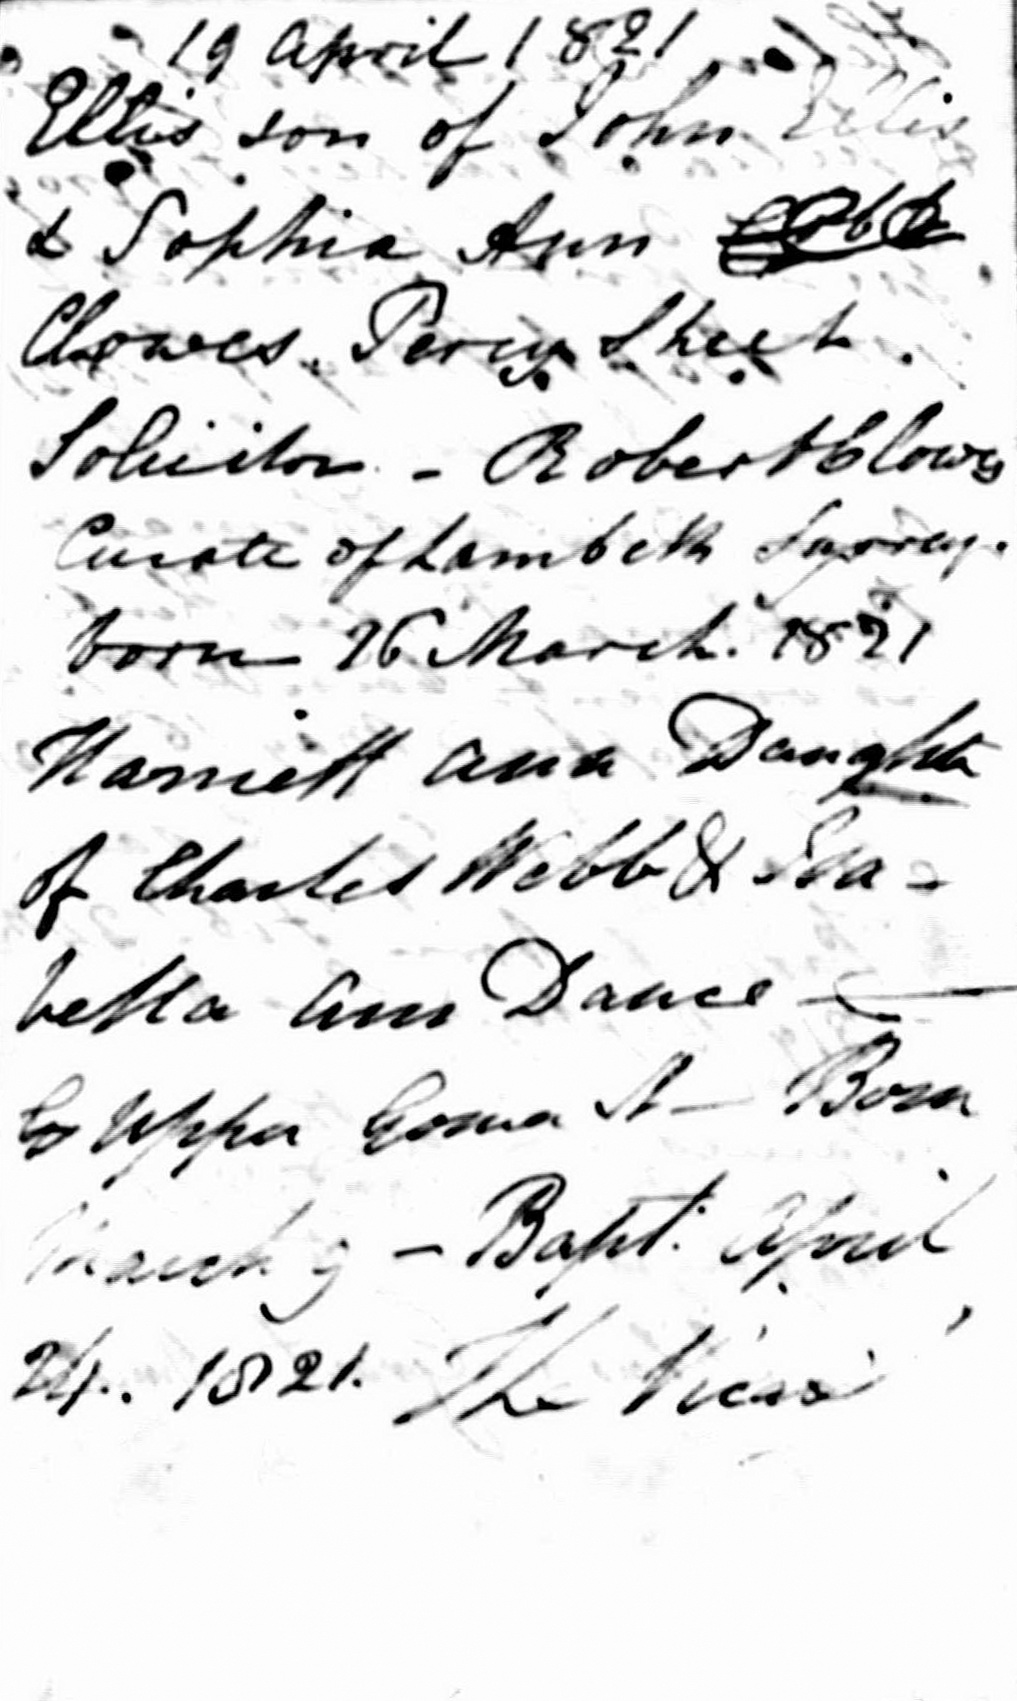 Parish register, Old St Pancras: Christening of Harriett Ann Dance